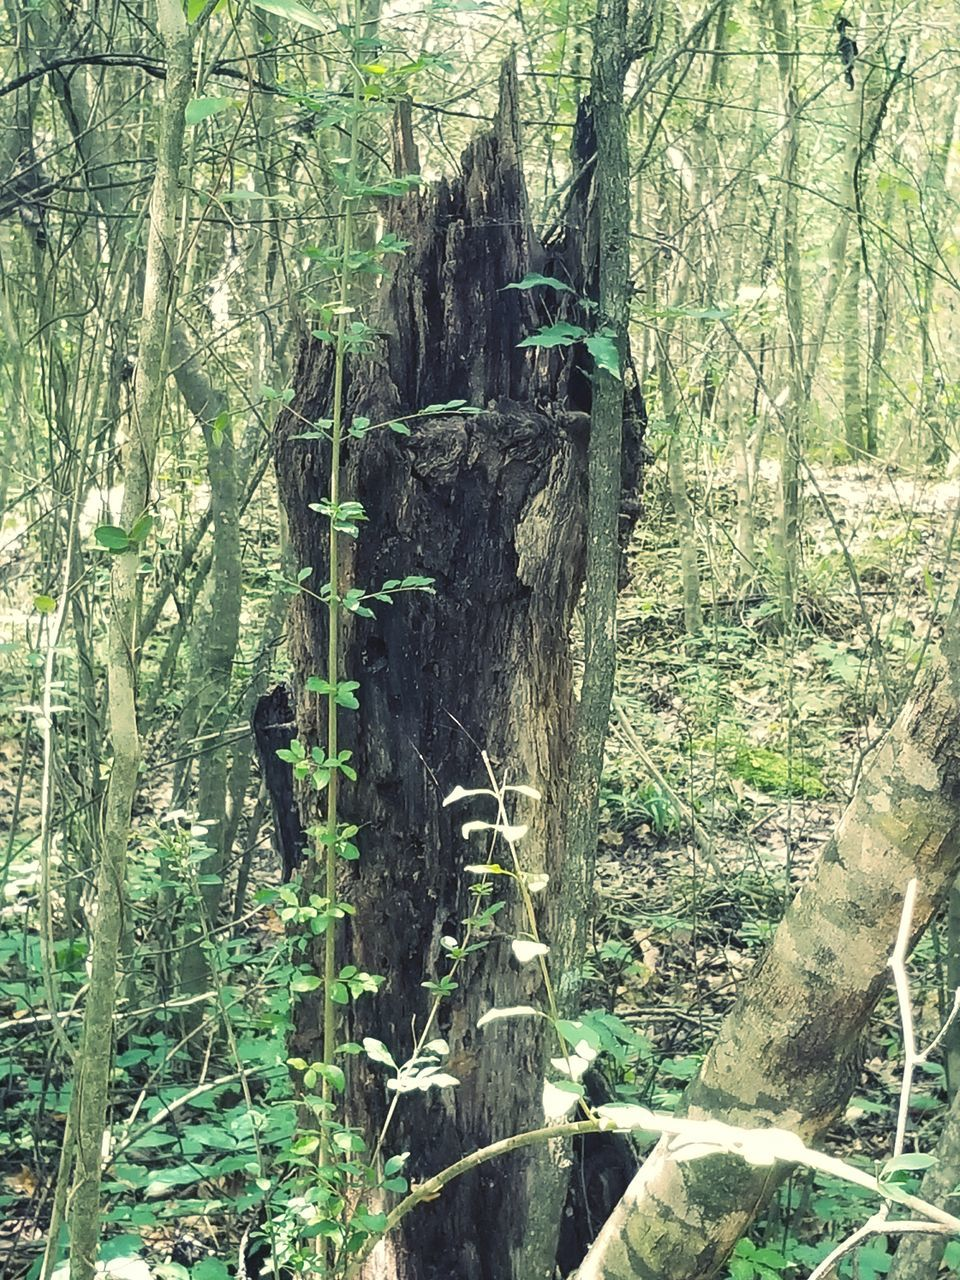 tree, forest, tree trunk, nature, growth, day, outdoors, beauty in nature, tranquility, bamboo - plant, bamboo grove, landscape, no people